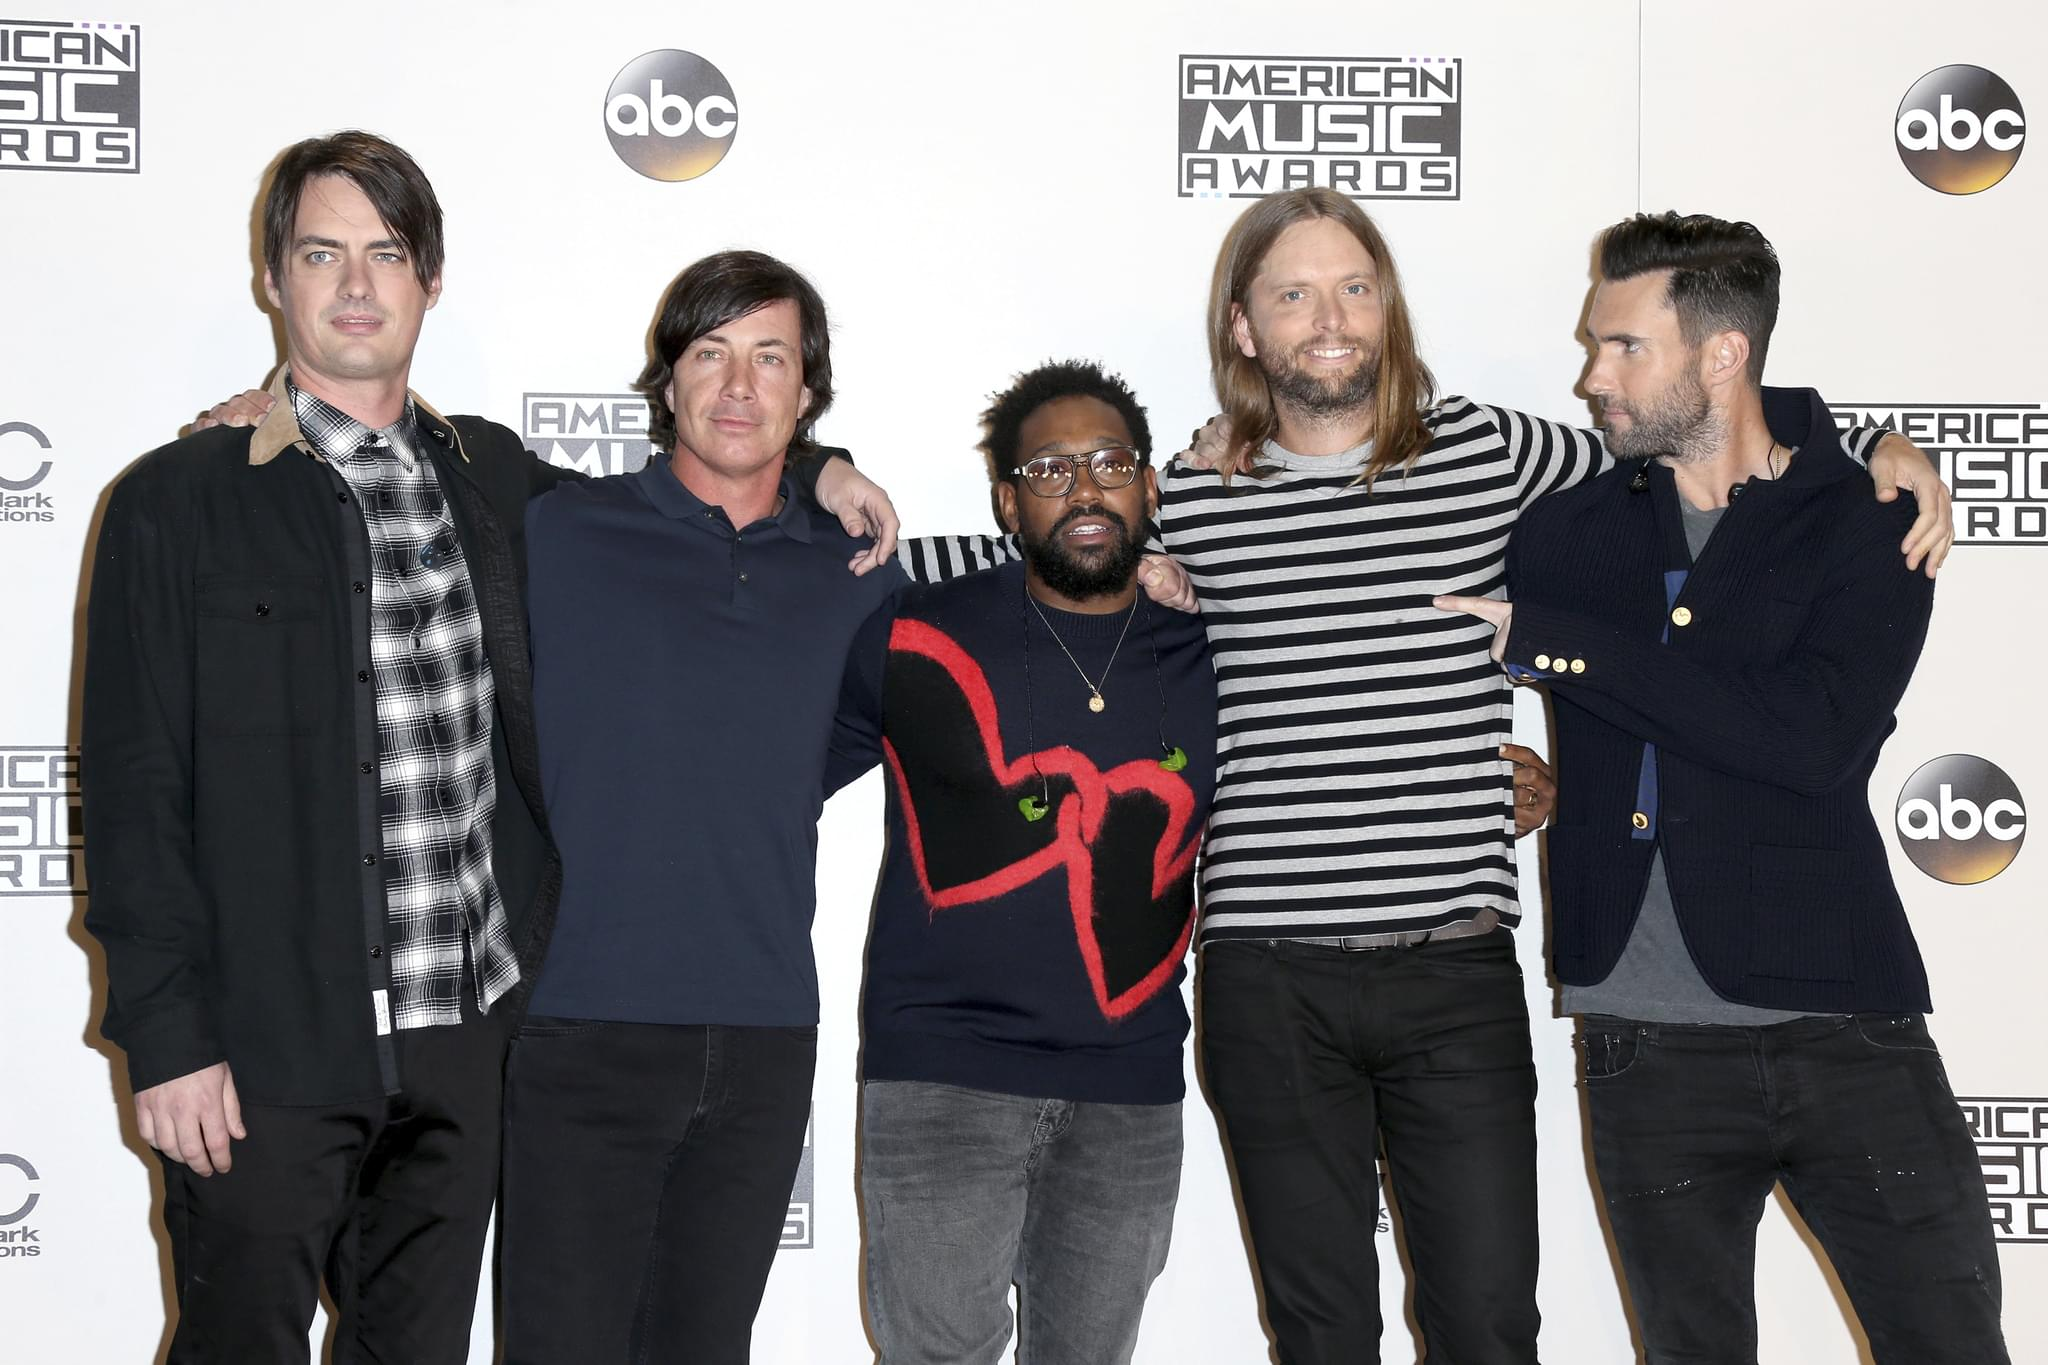 MAROON 5 bassist MICKEY MADDEN was Arrested for Alleged Domestic Violence